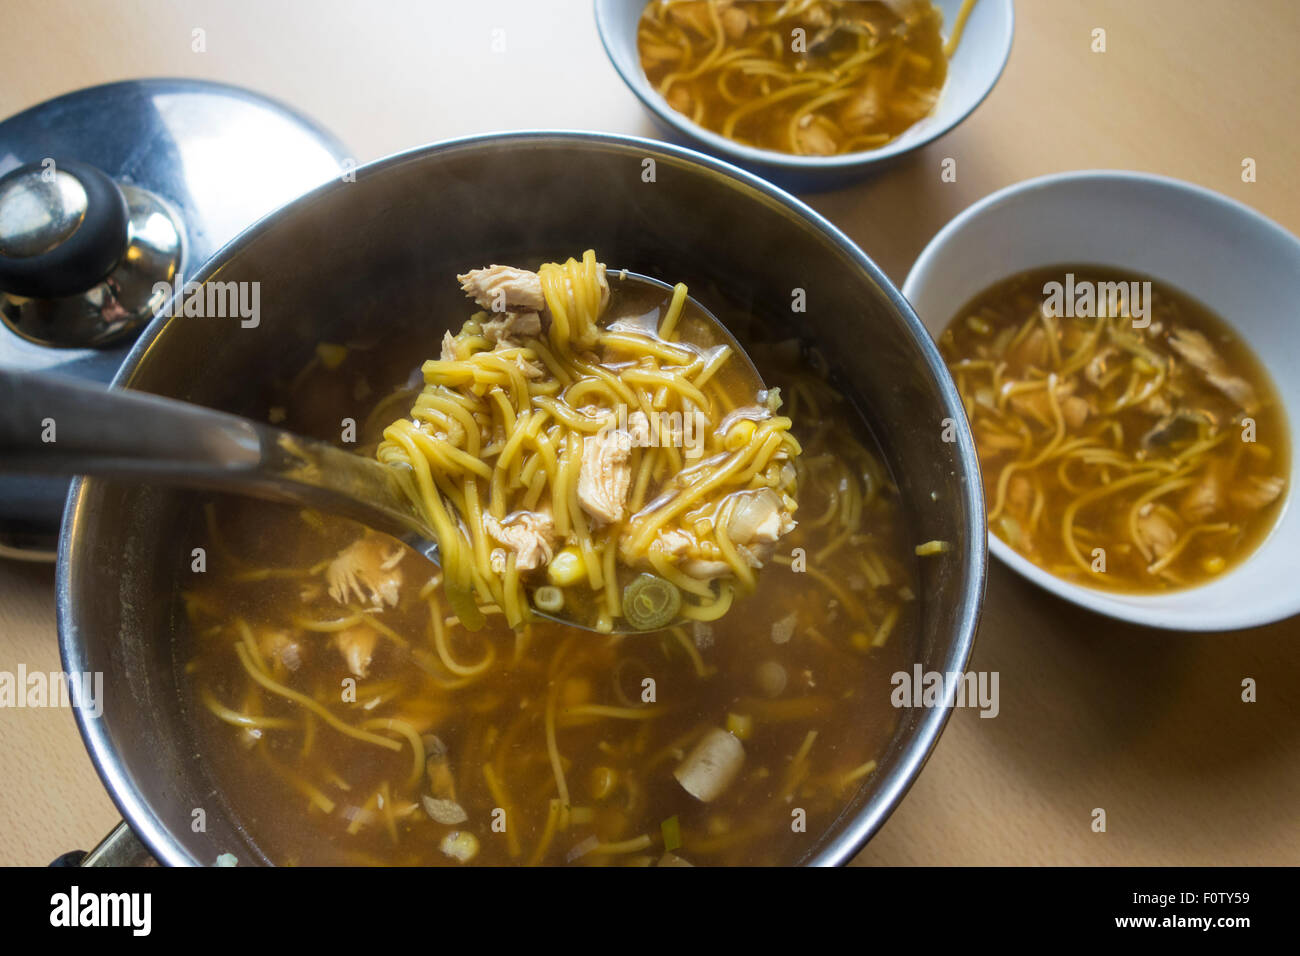 Home-made chicken noodle soup - Stock Image